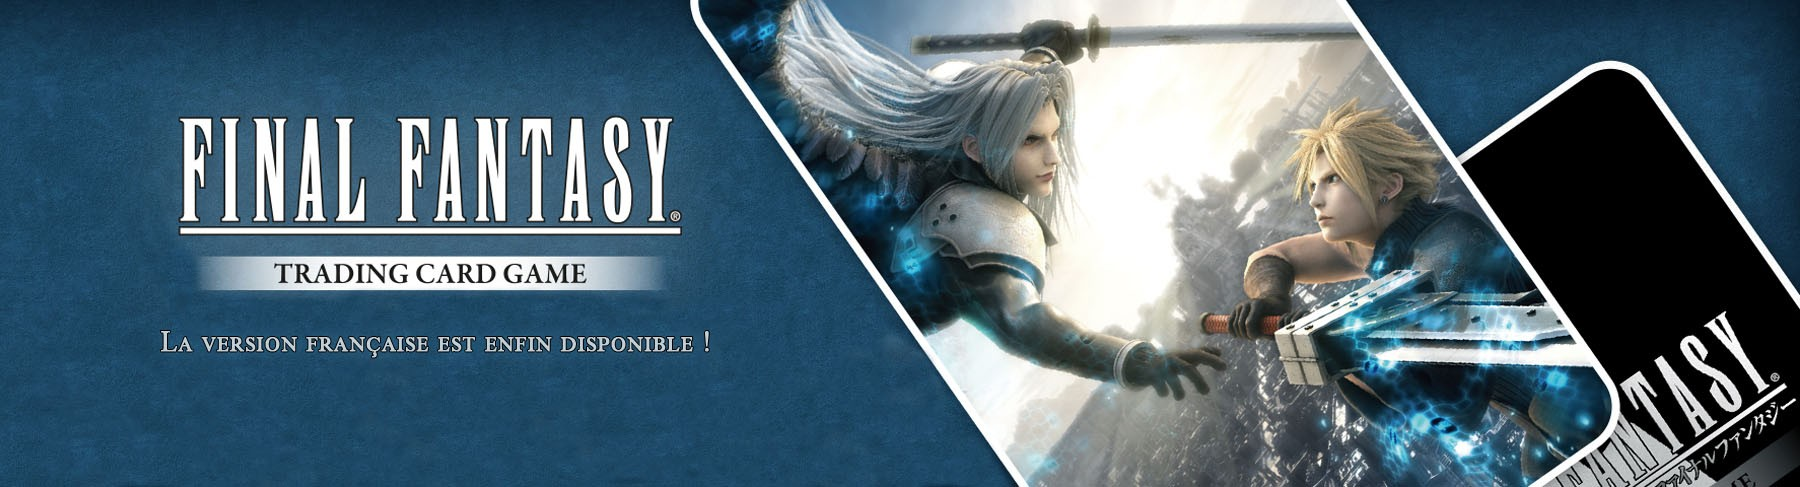 Final Fantasy arrive en version française !